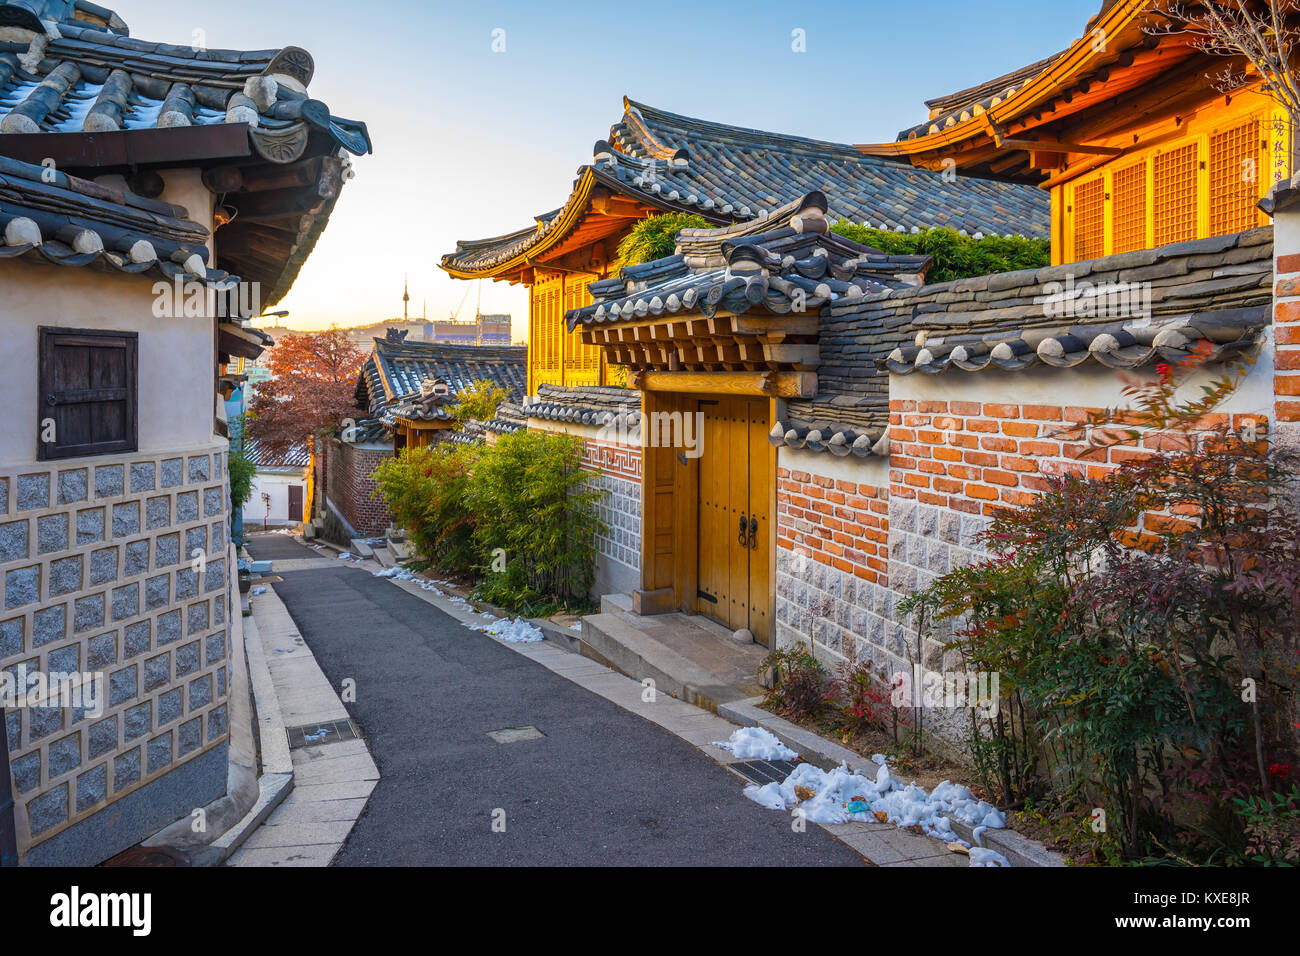 Seoul city skyline with Bukchon Hanok village in South Korea. - Stock Image